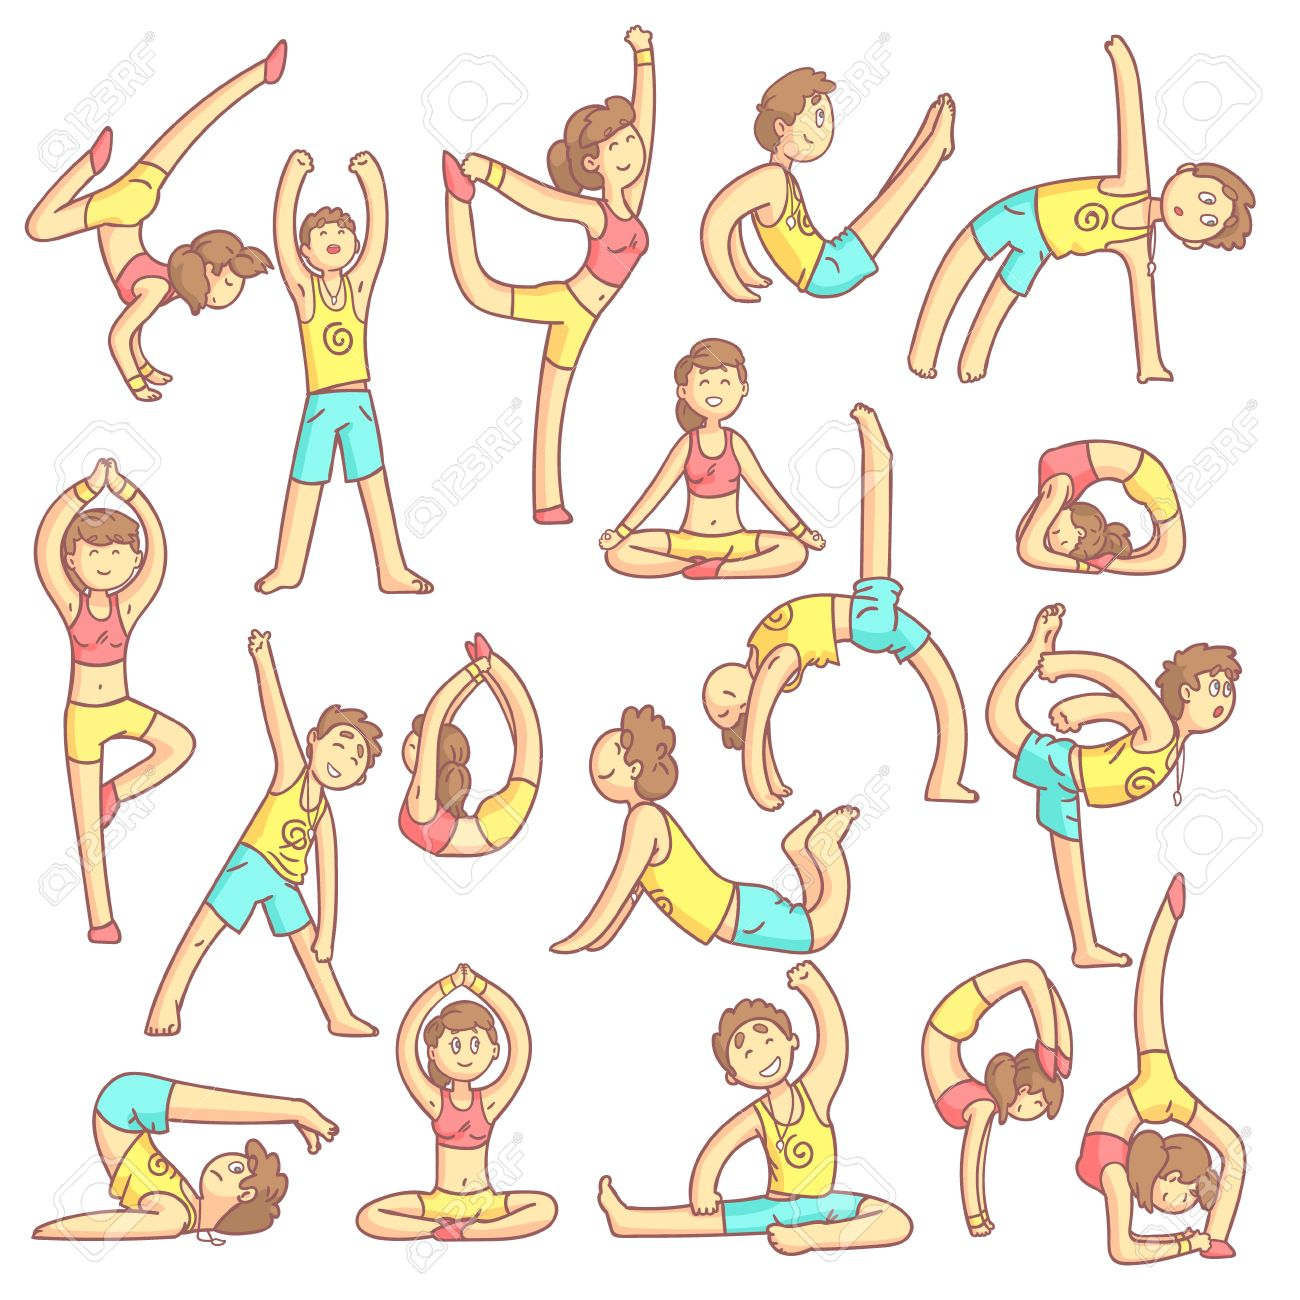 Couple Doing Yoga Poses Set Of Flat Outlined Pale Color Funny Royalty Free Cliparts Vectors And Stock Illustration Image 56858864